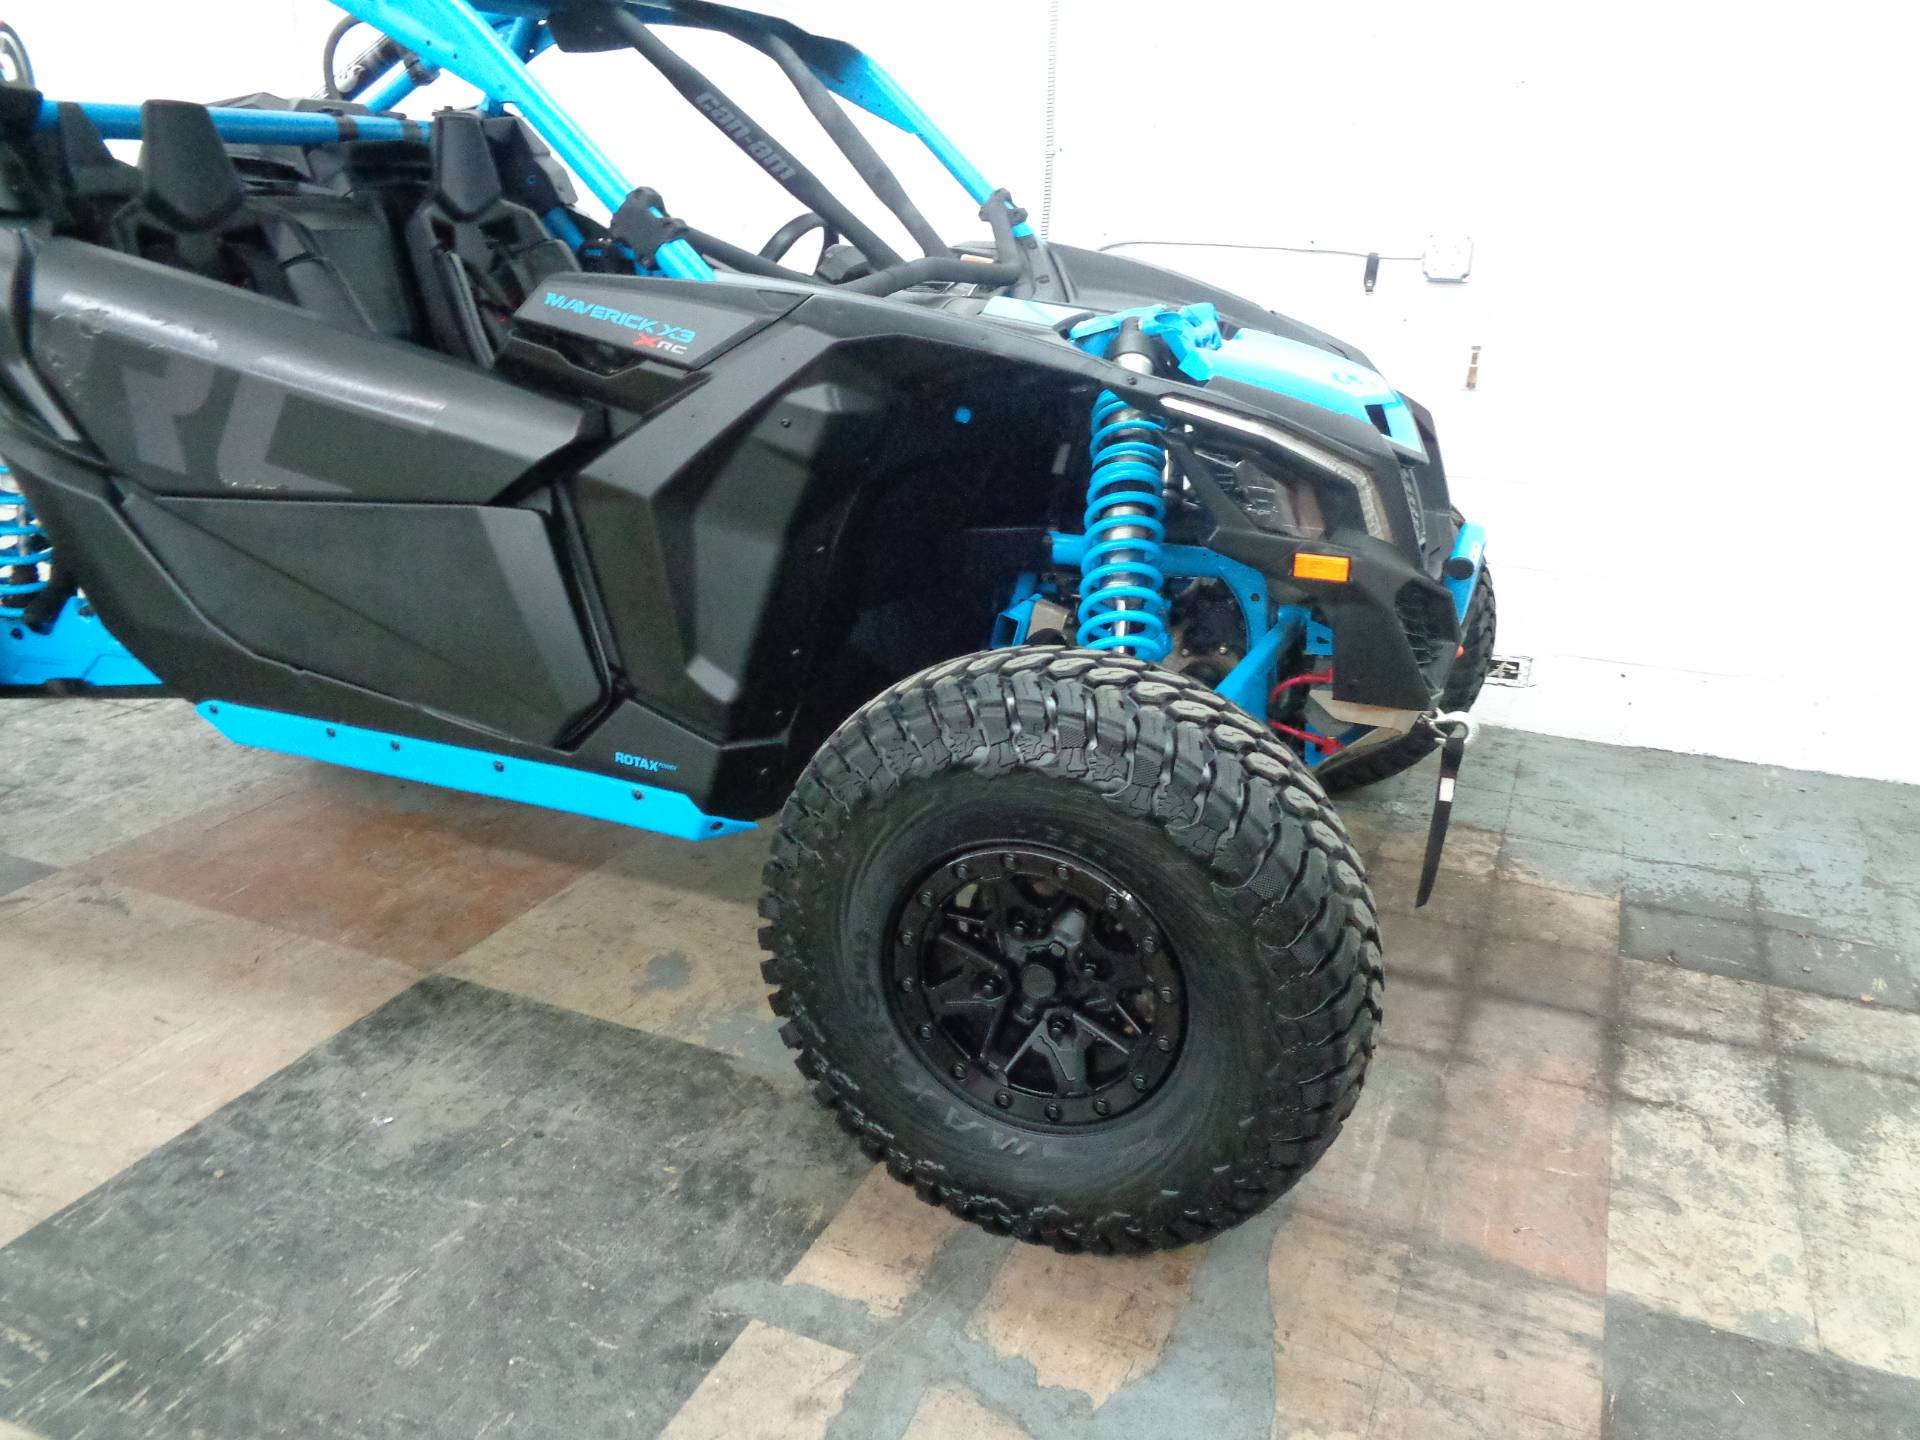 2018 Can-Am Maverick X3 X rc Turbo R in Tulsa, Oklahoma - Photo 2